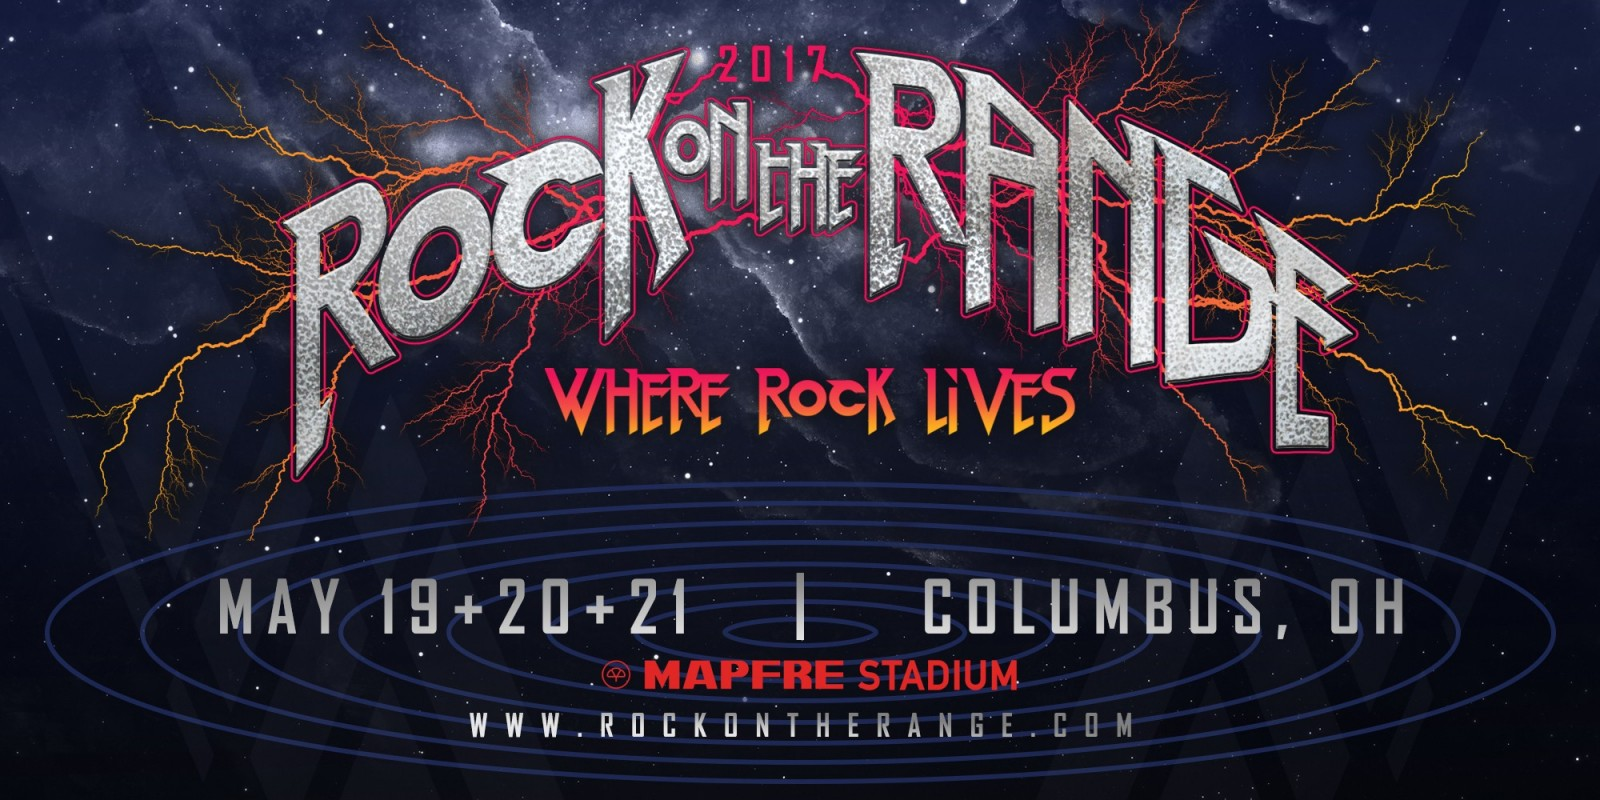 2017 Rock On The Range hero image showing date and location.